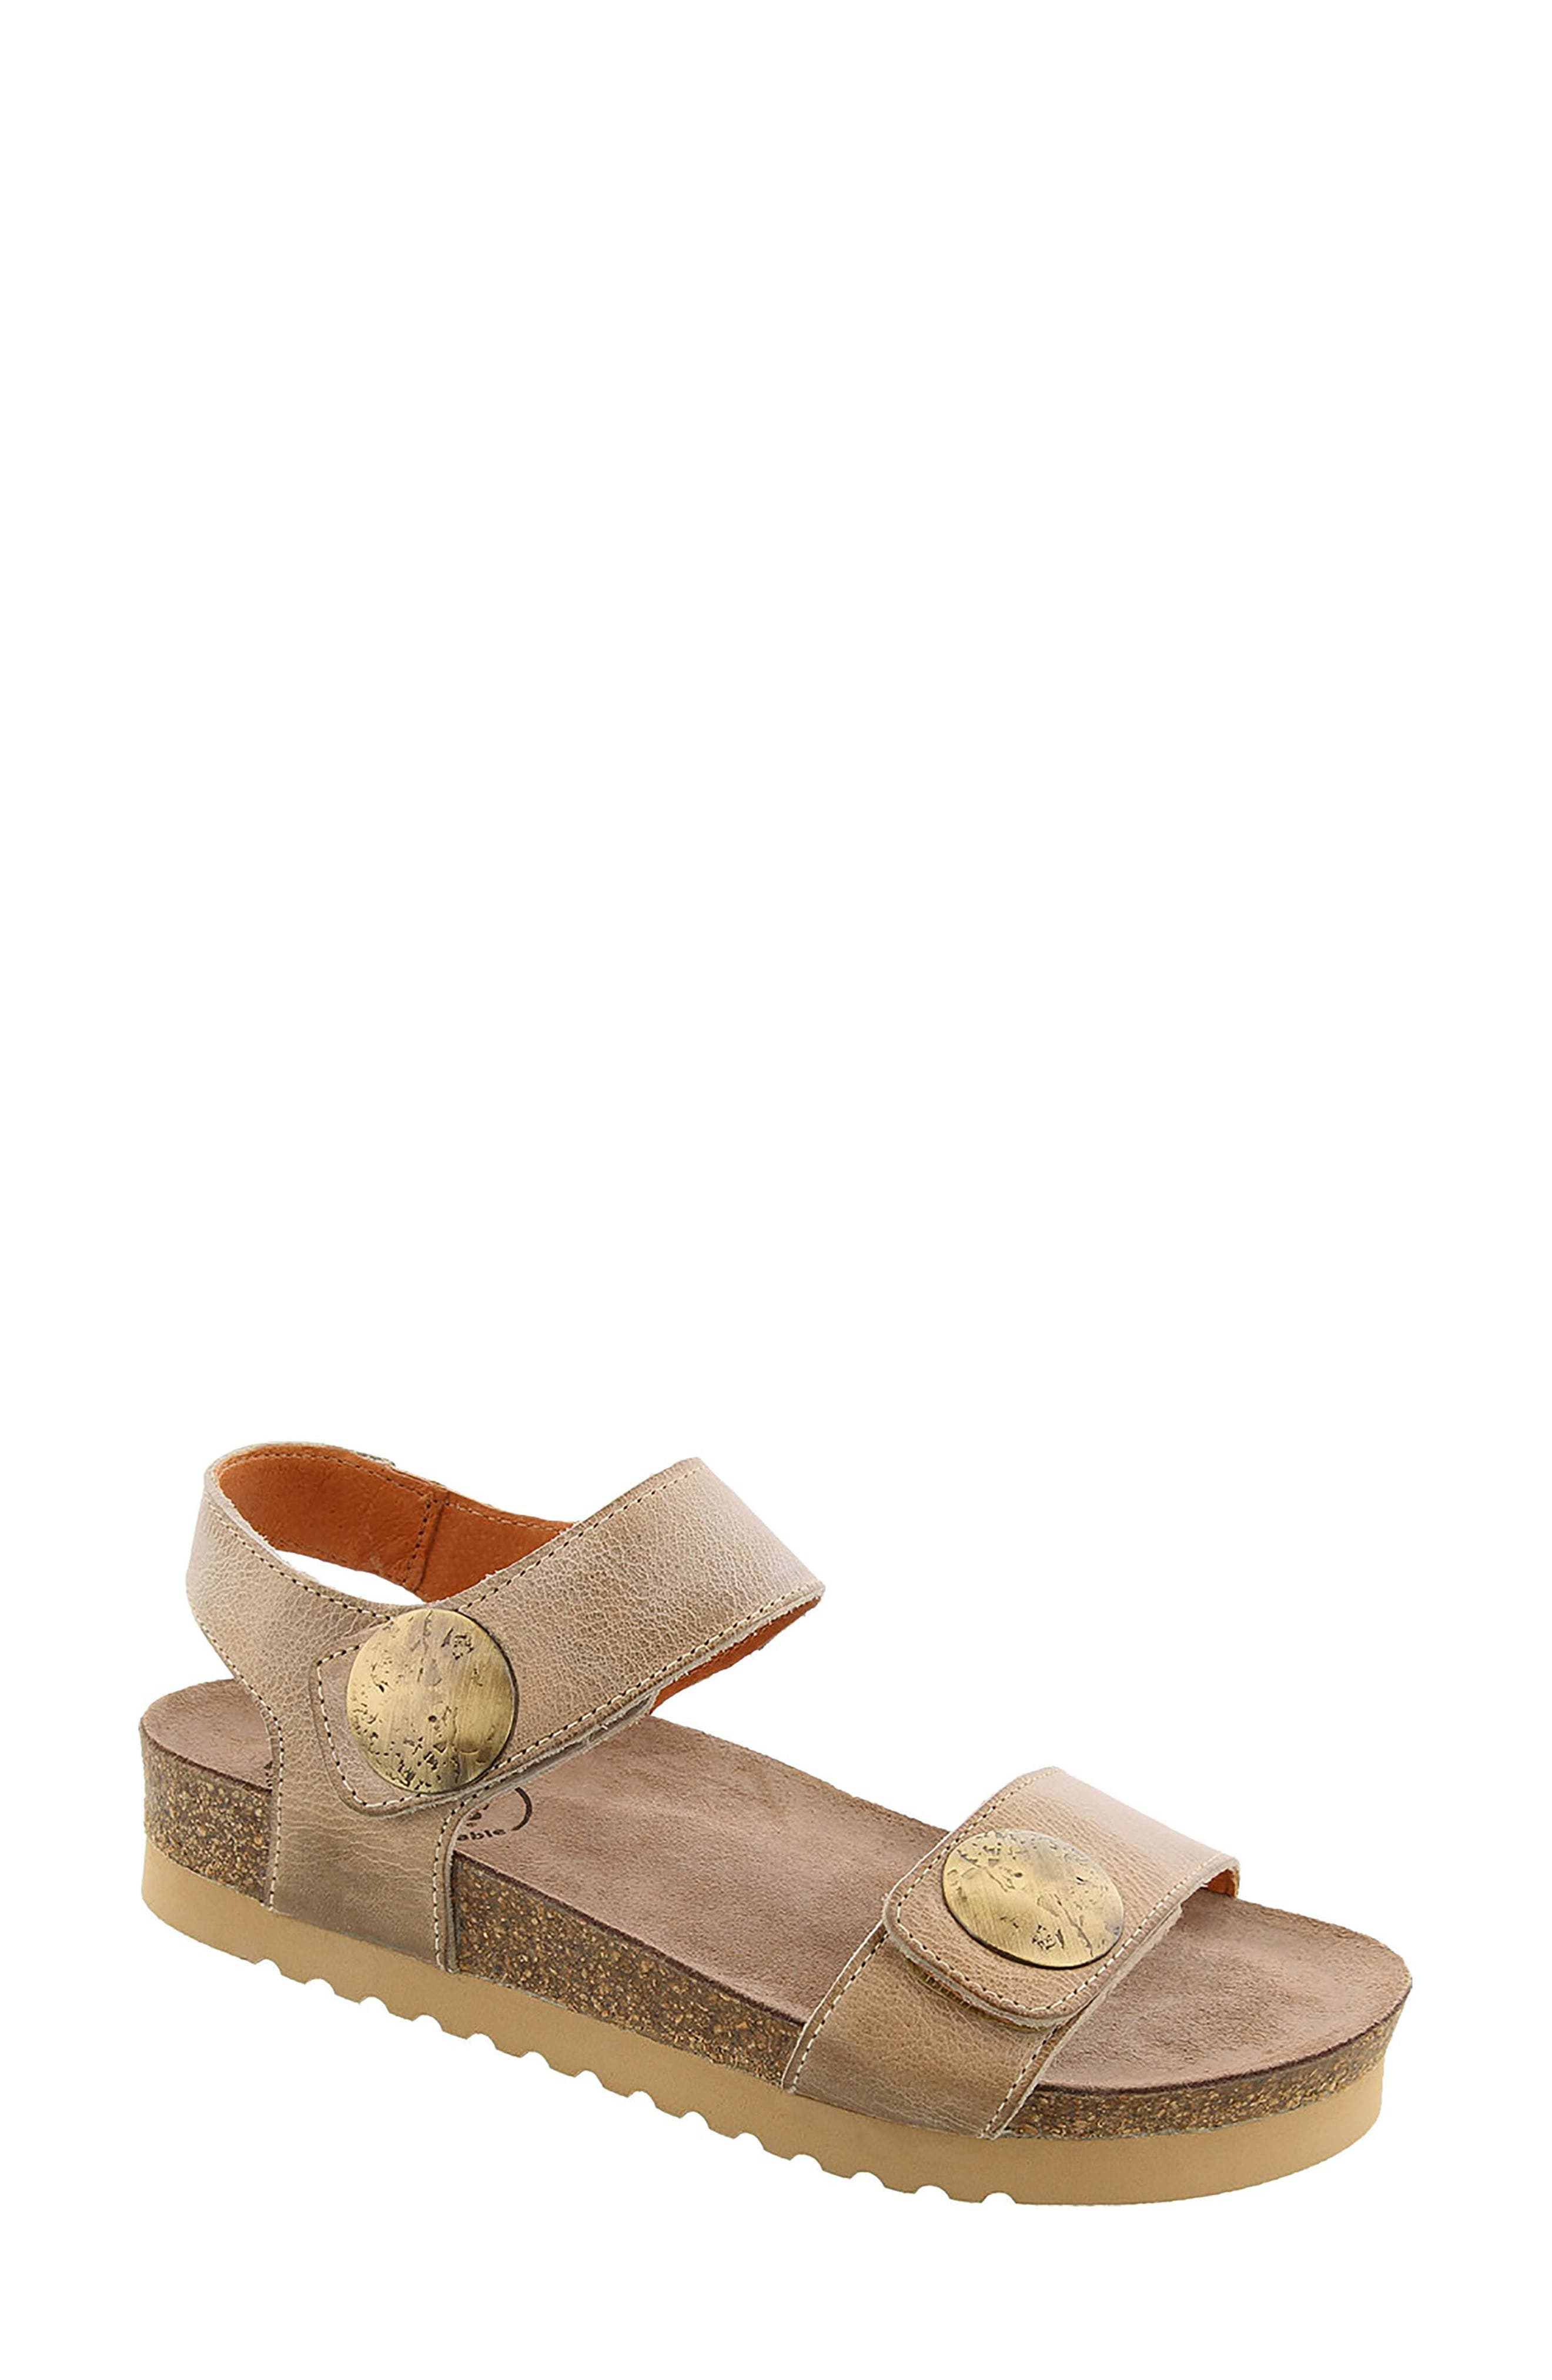 Luckie Sandal,                             Main thumbnail 5, color,